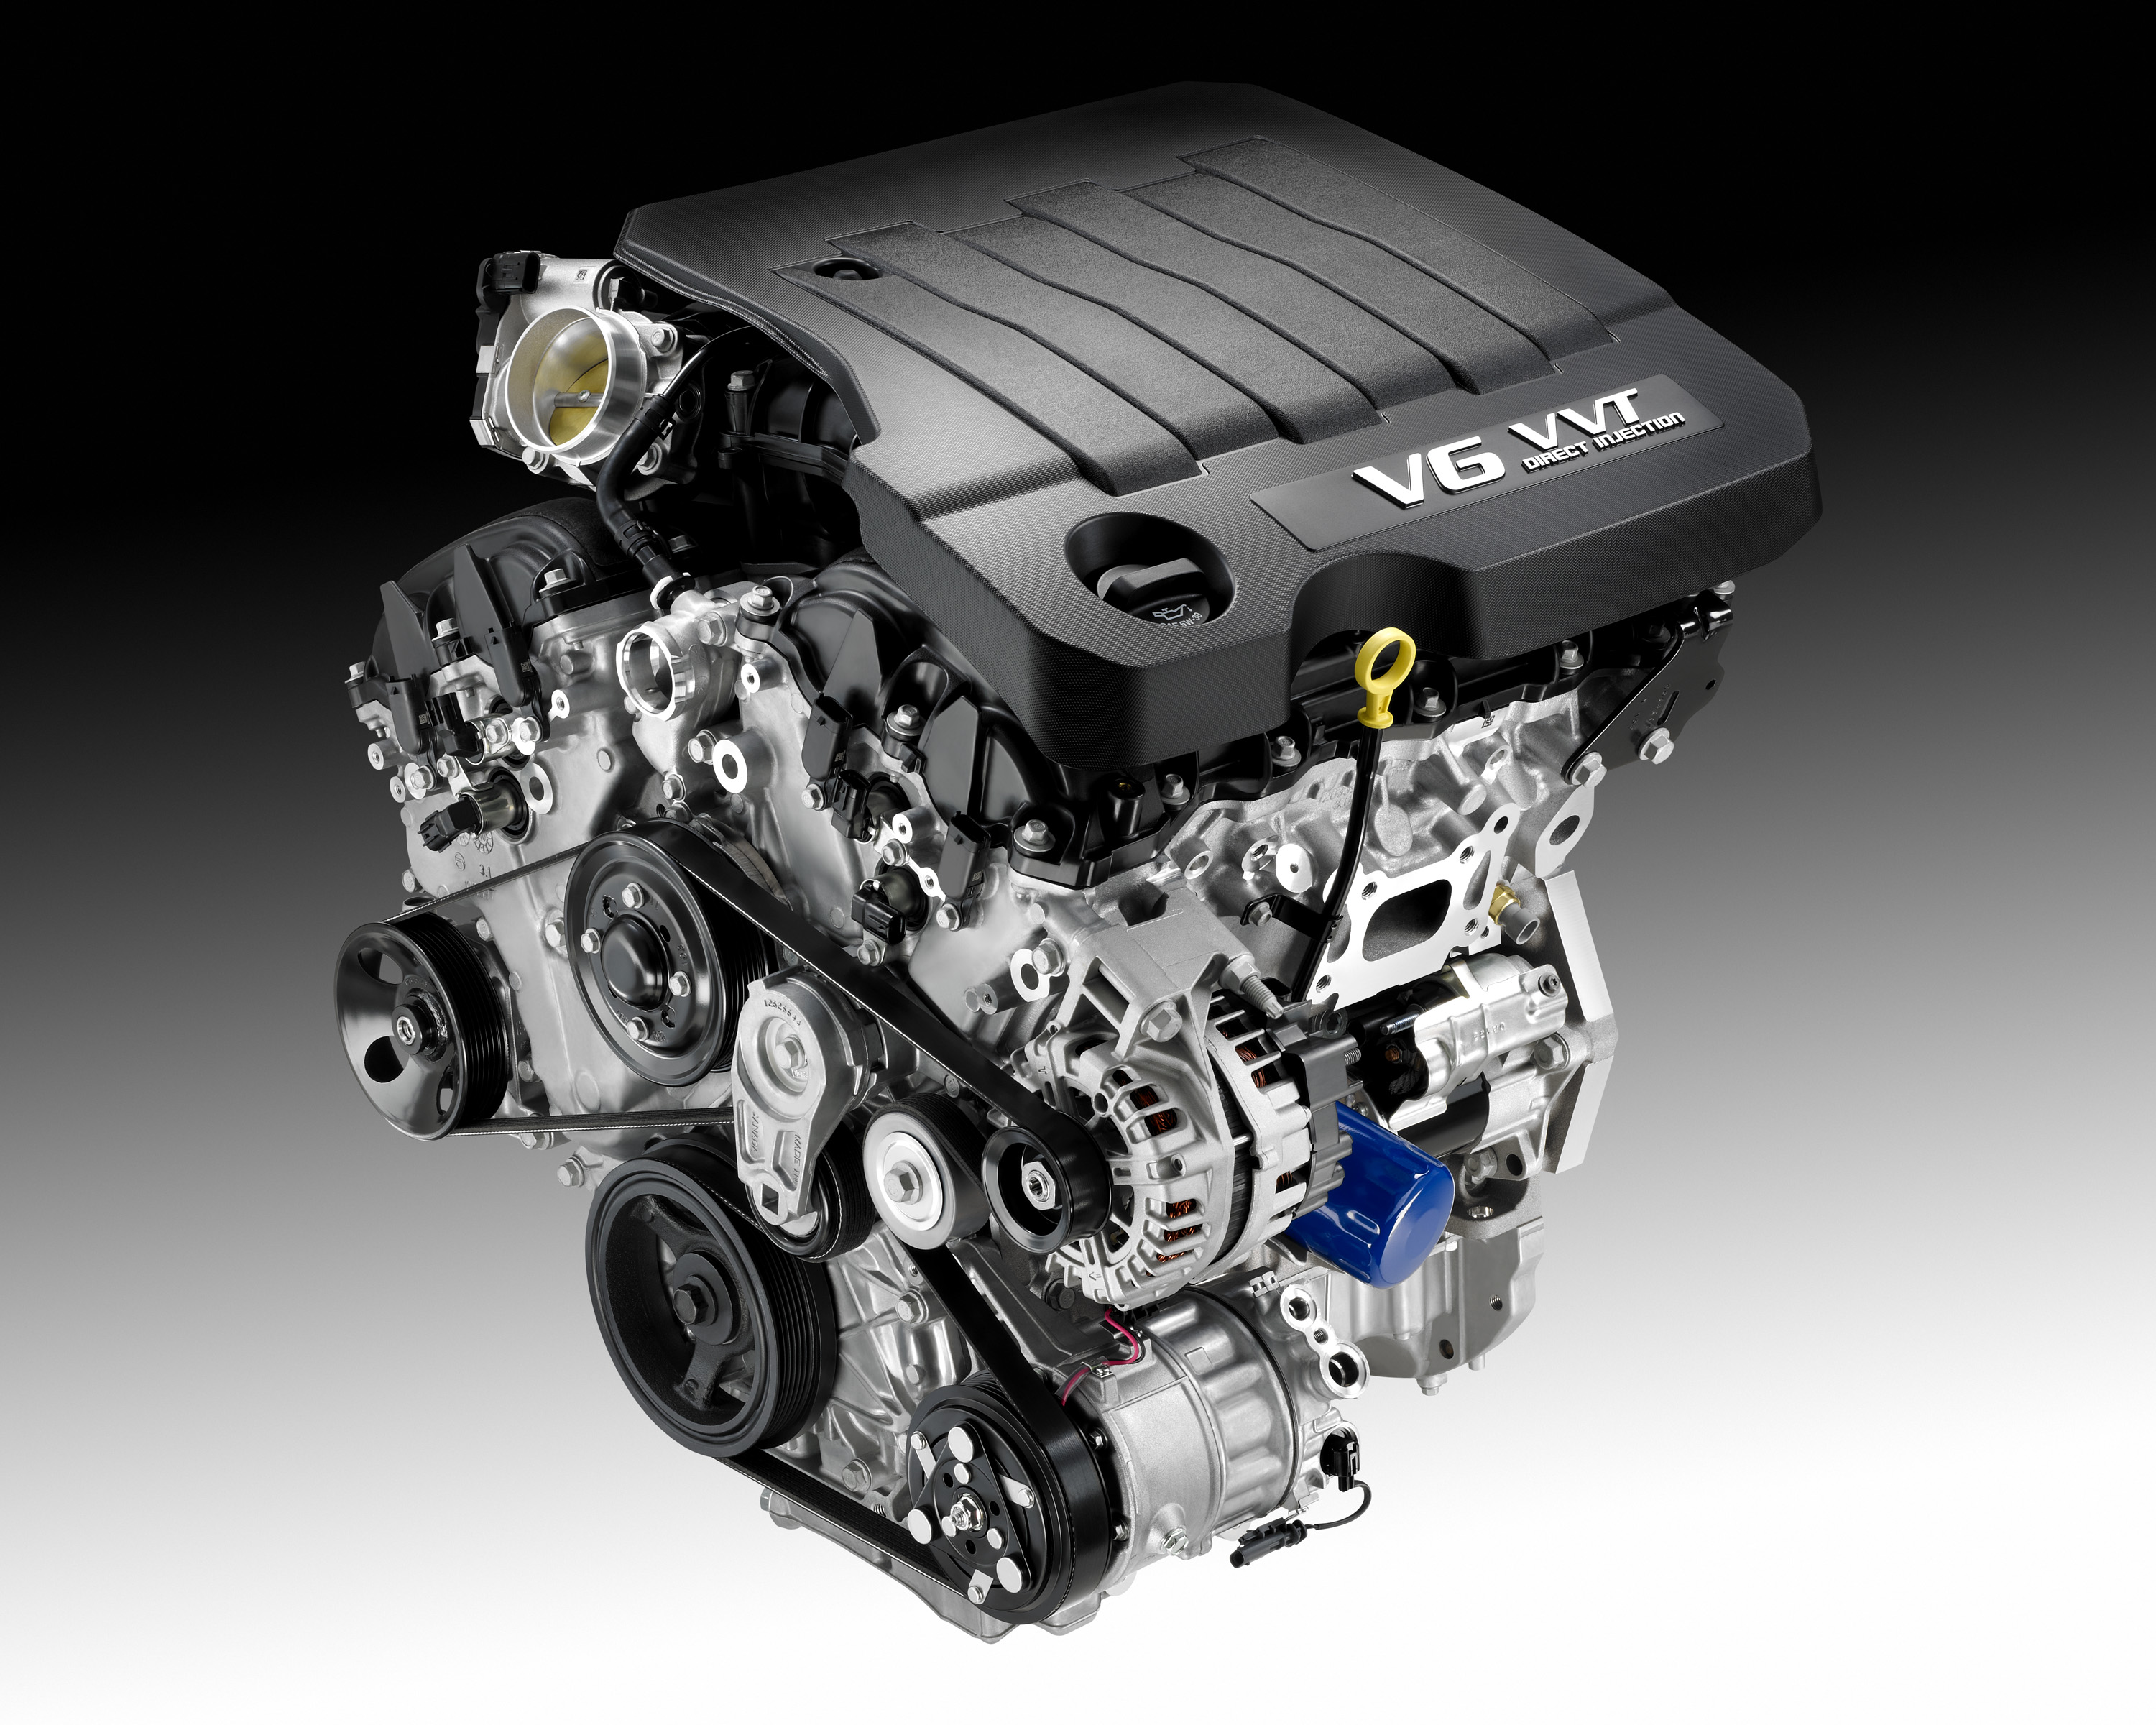 Gm Developing Pair Of Twin Turbo V 6 Engines Report